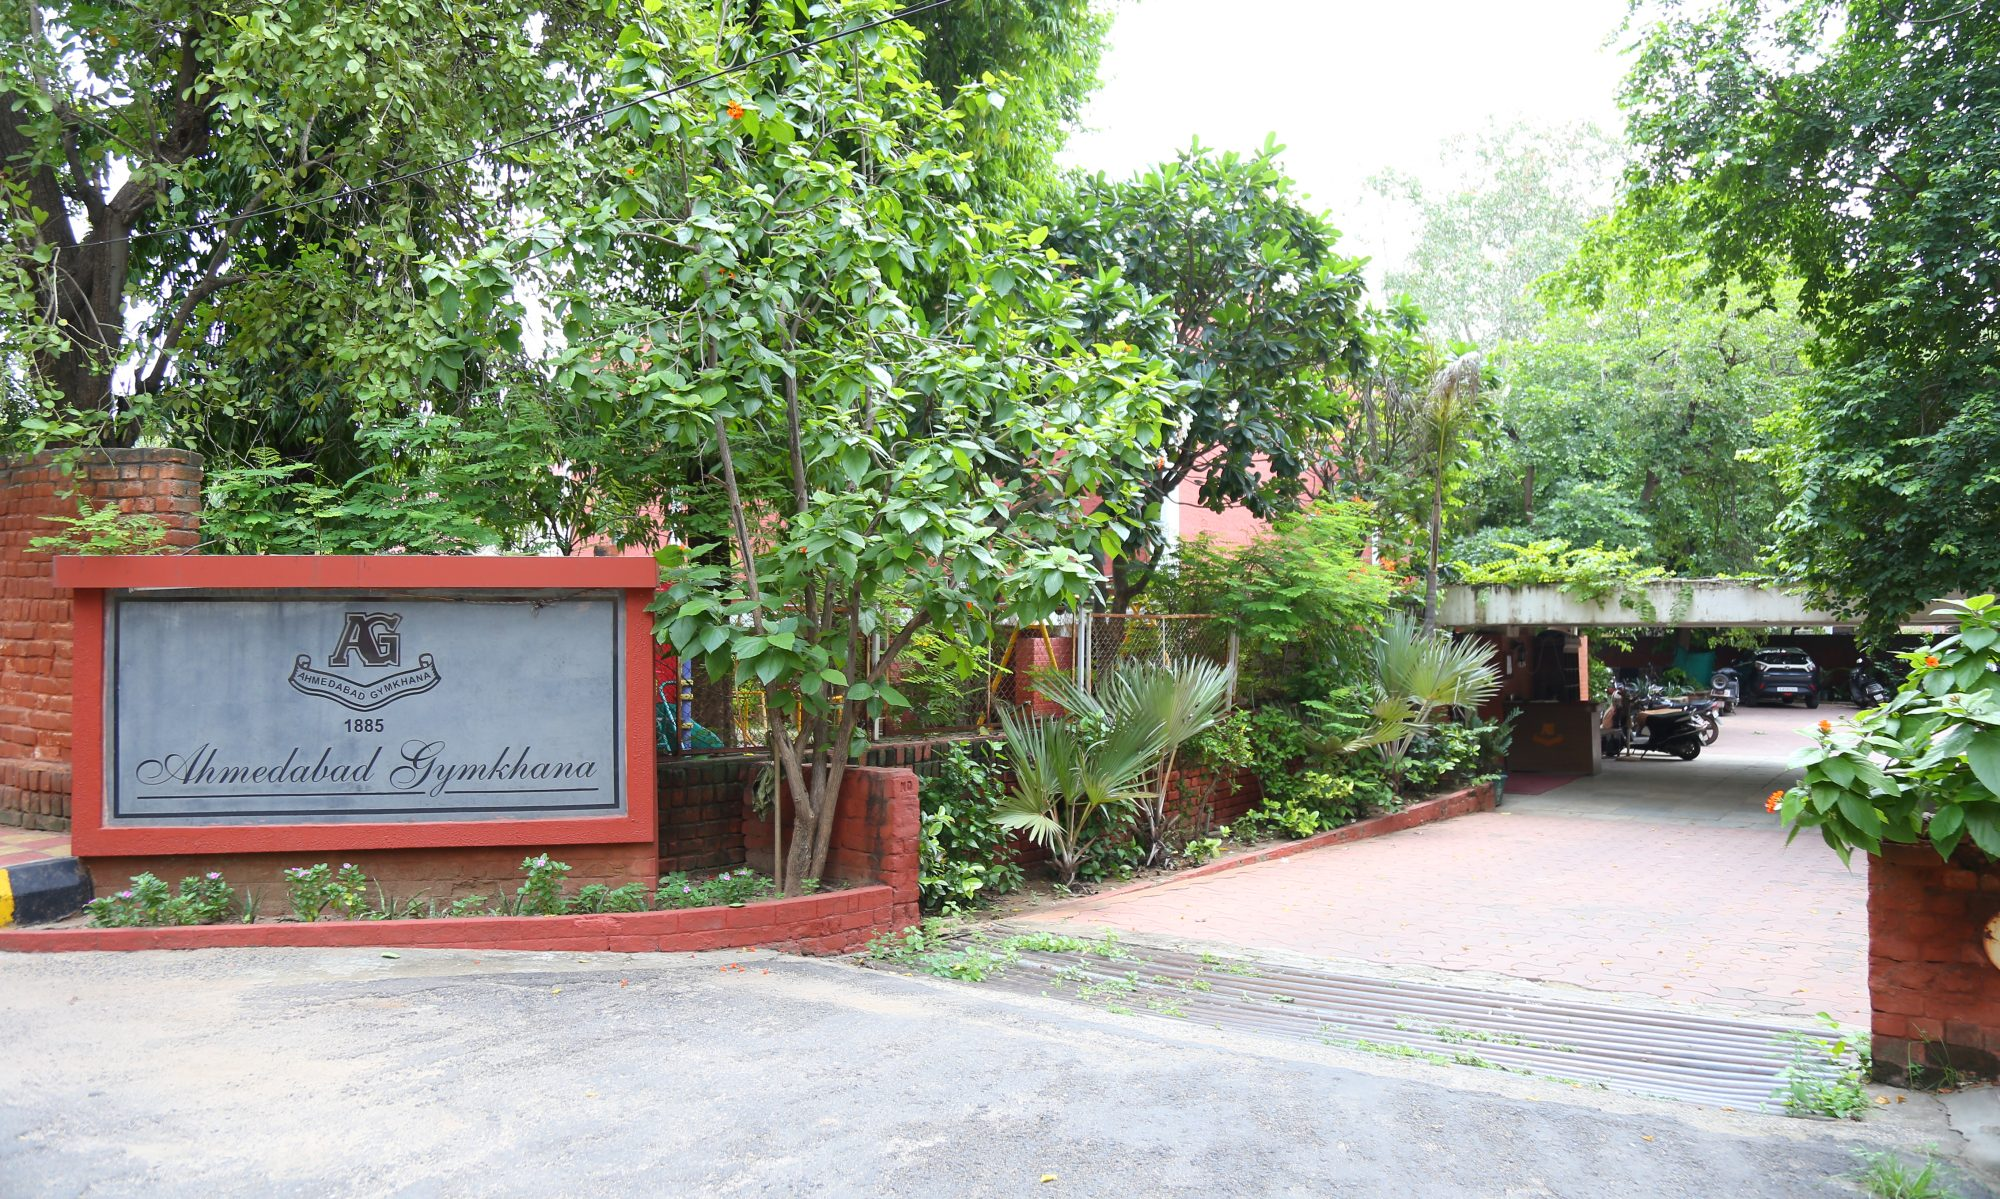 The Ahmedabad Gymkhana Club